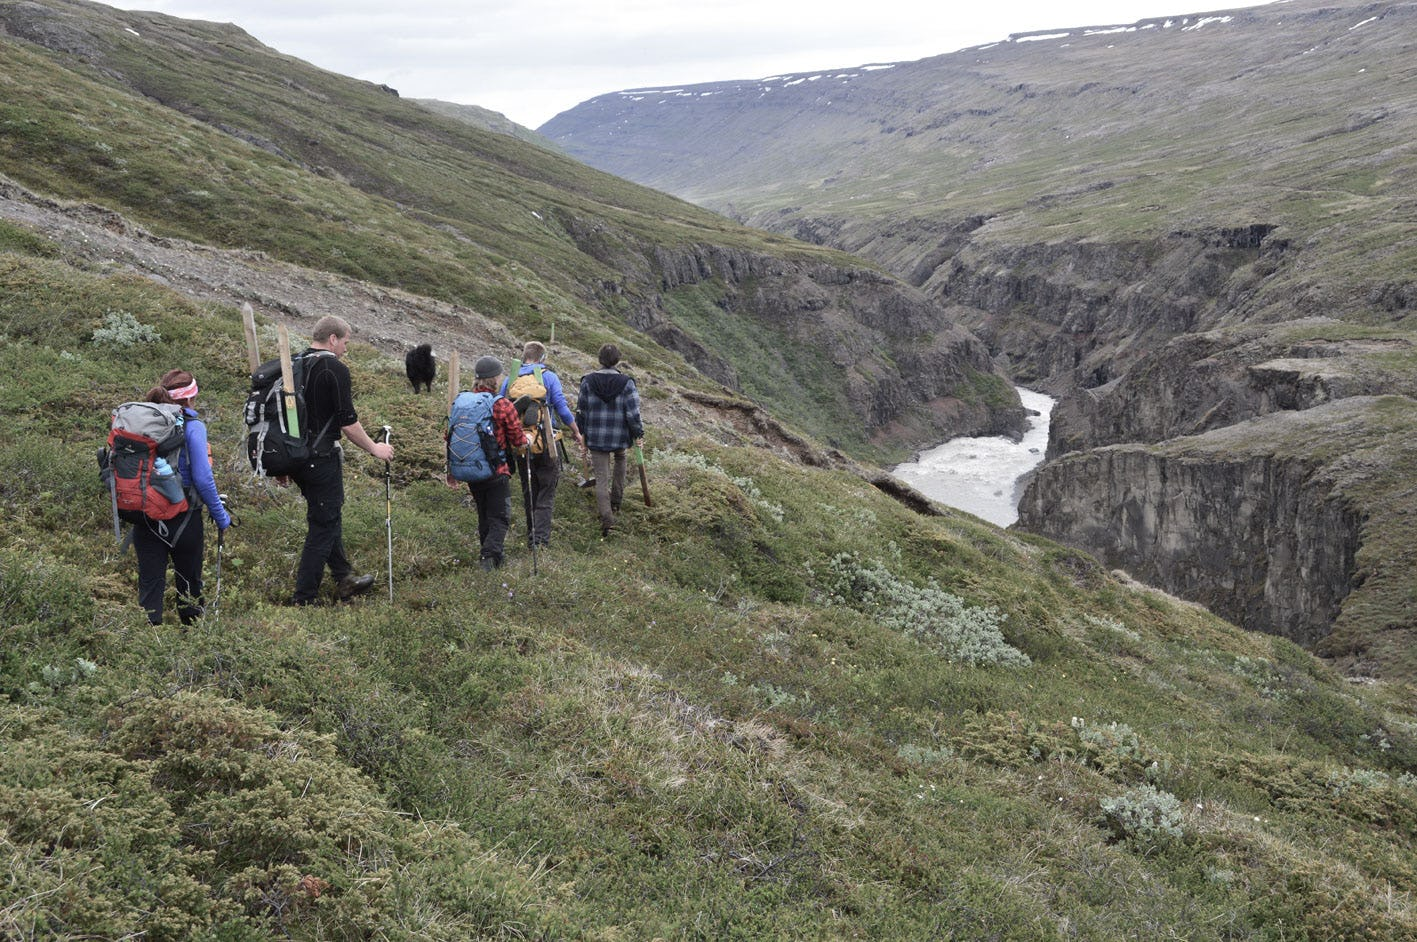 Spend a day in East Iceland hiking along Jökulsá river.